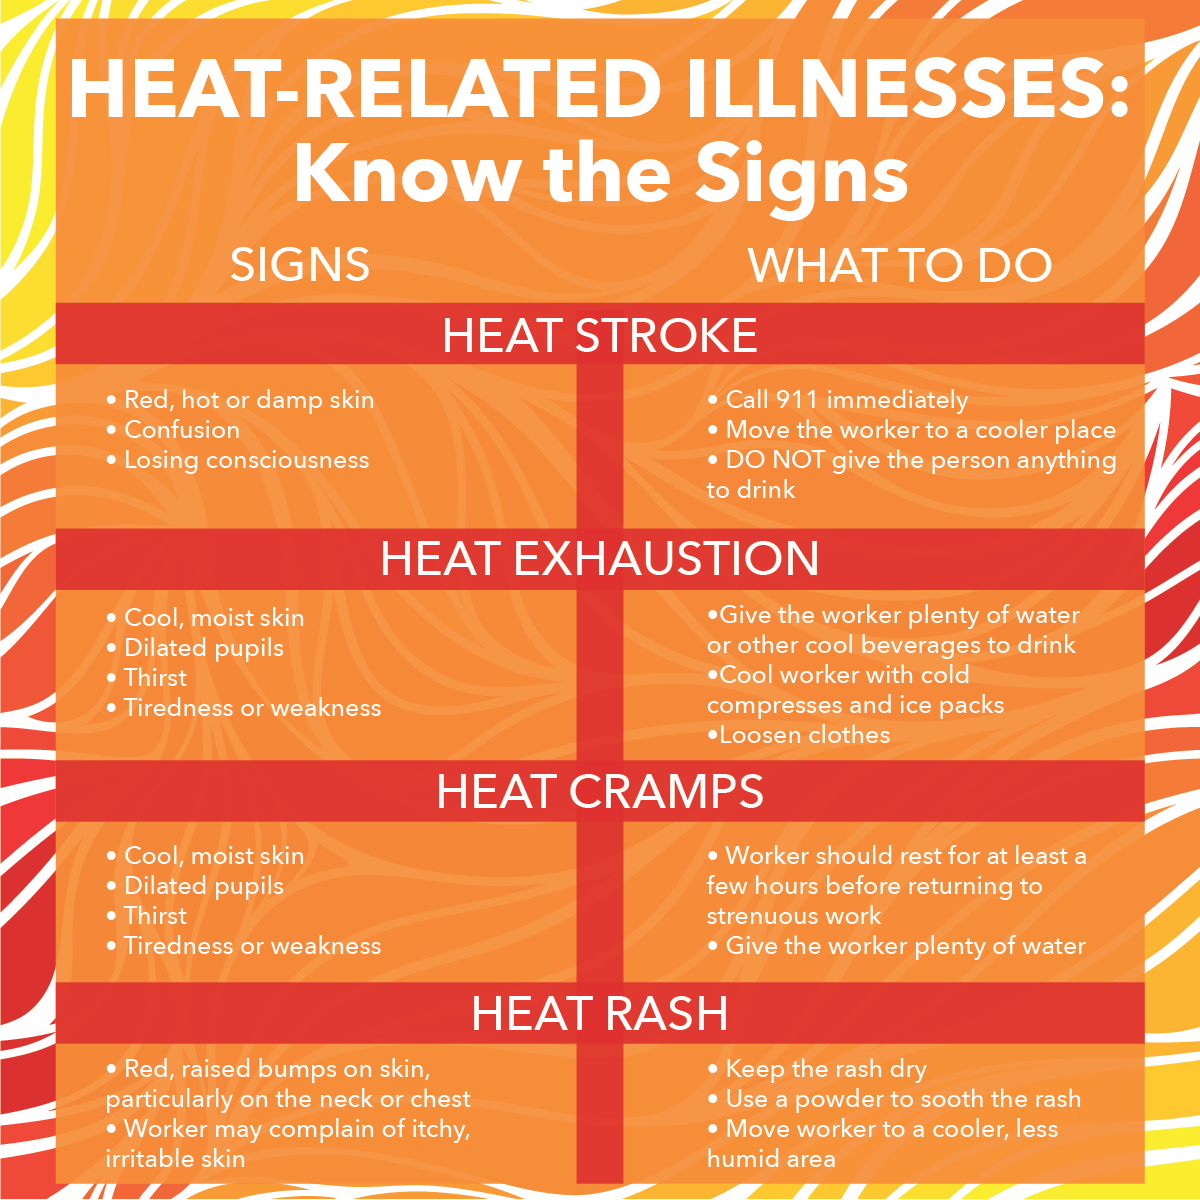 Heat-related illnesses infographic